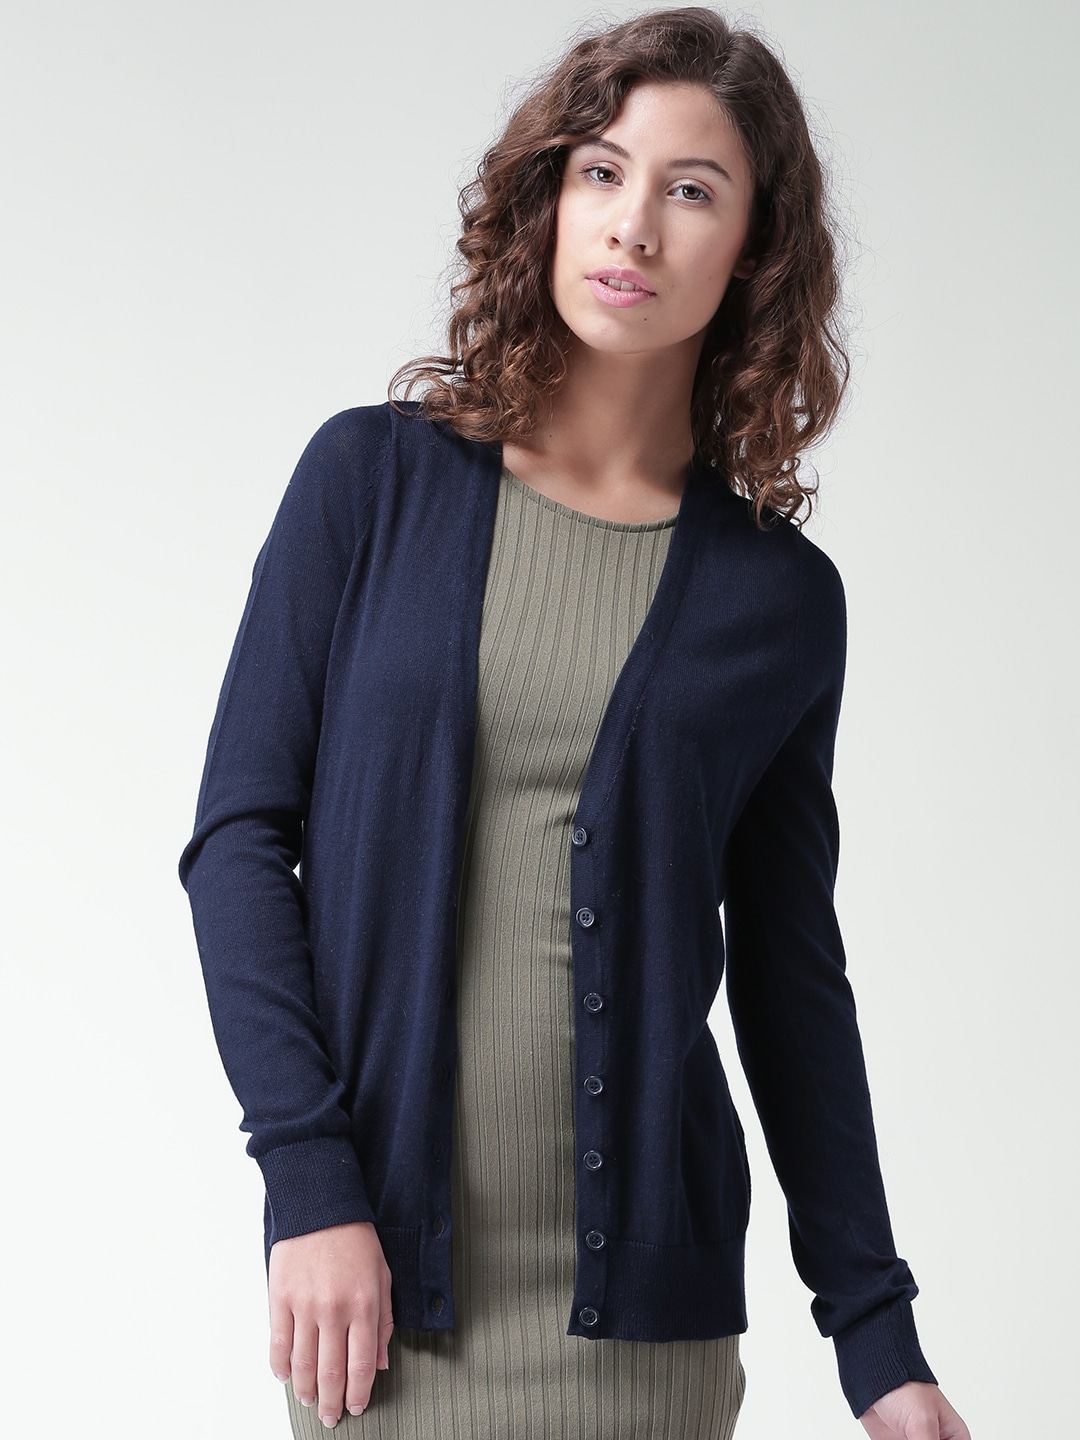 Buy FOREVER 21 Peach Coloured Cardigan - Sweaters for Women | Myntra